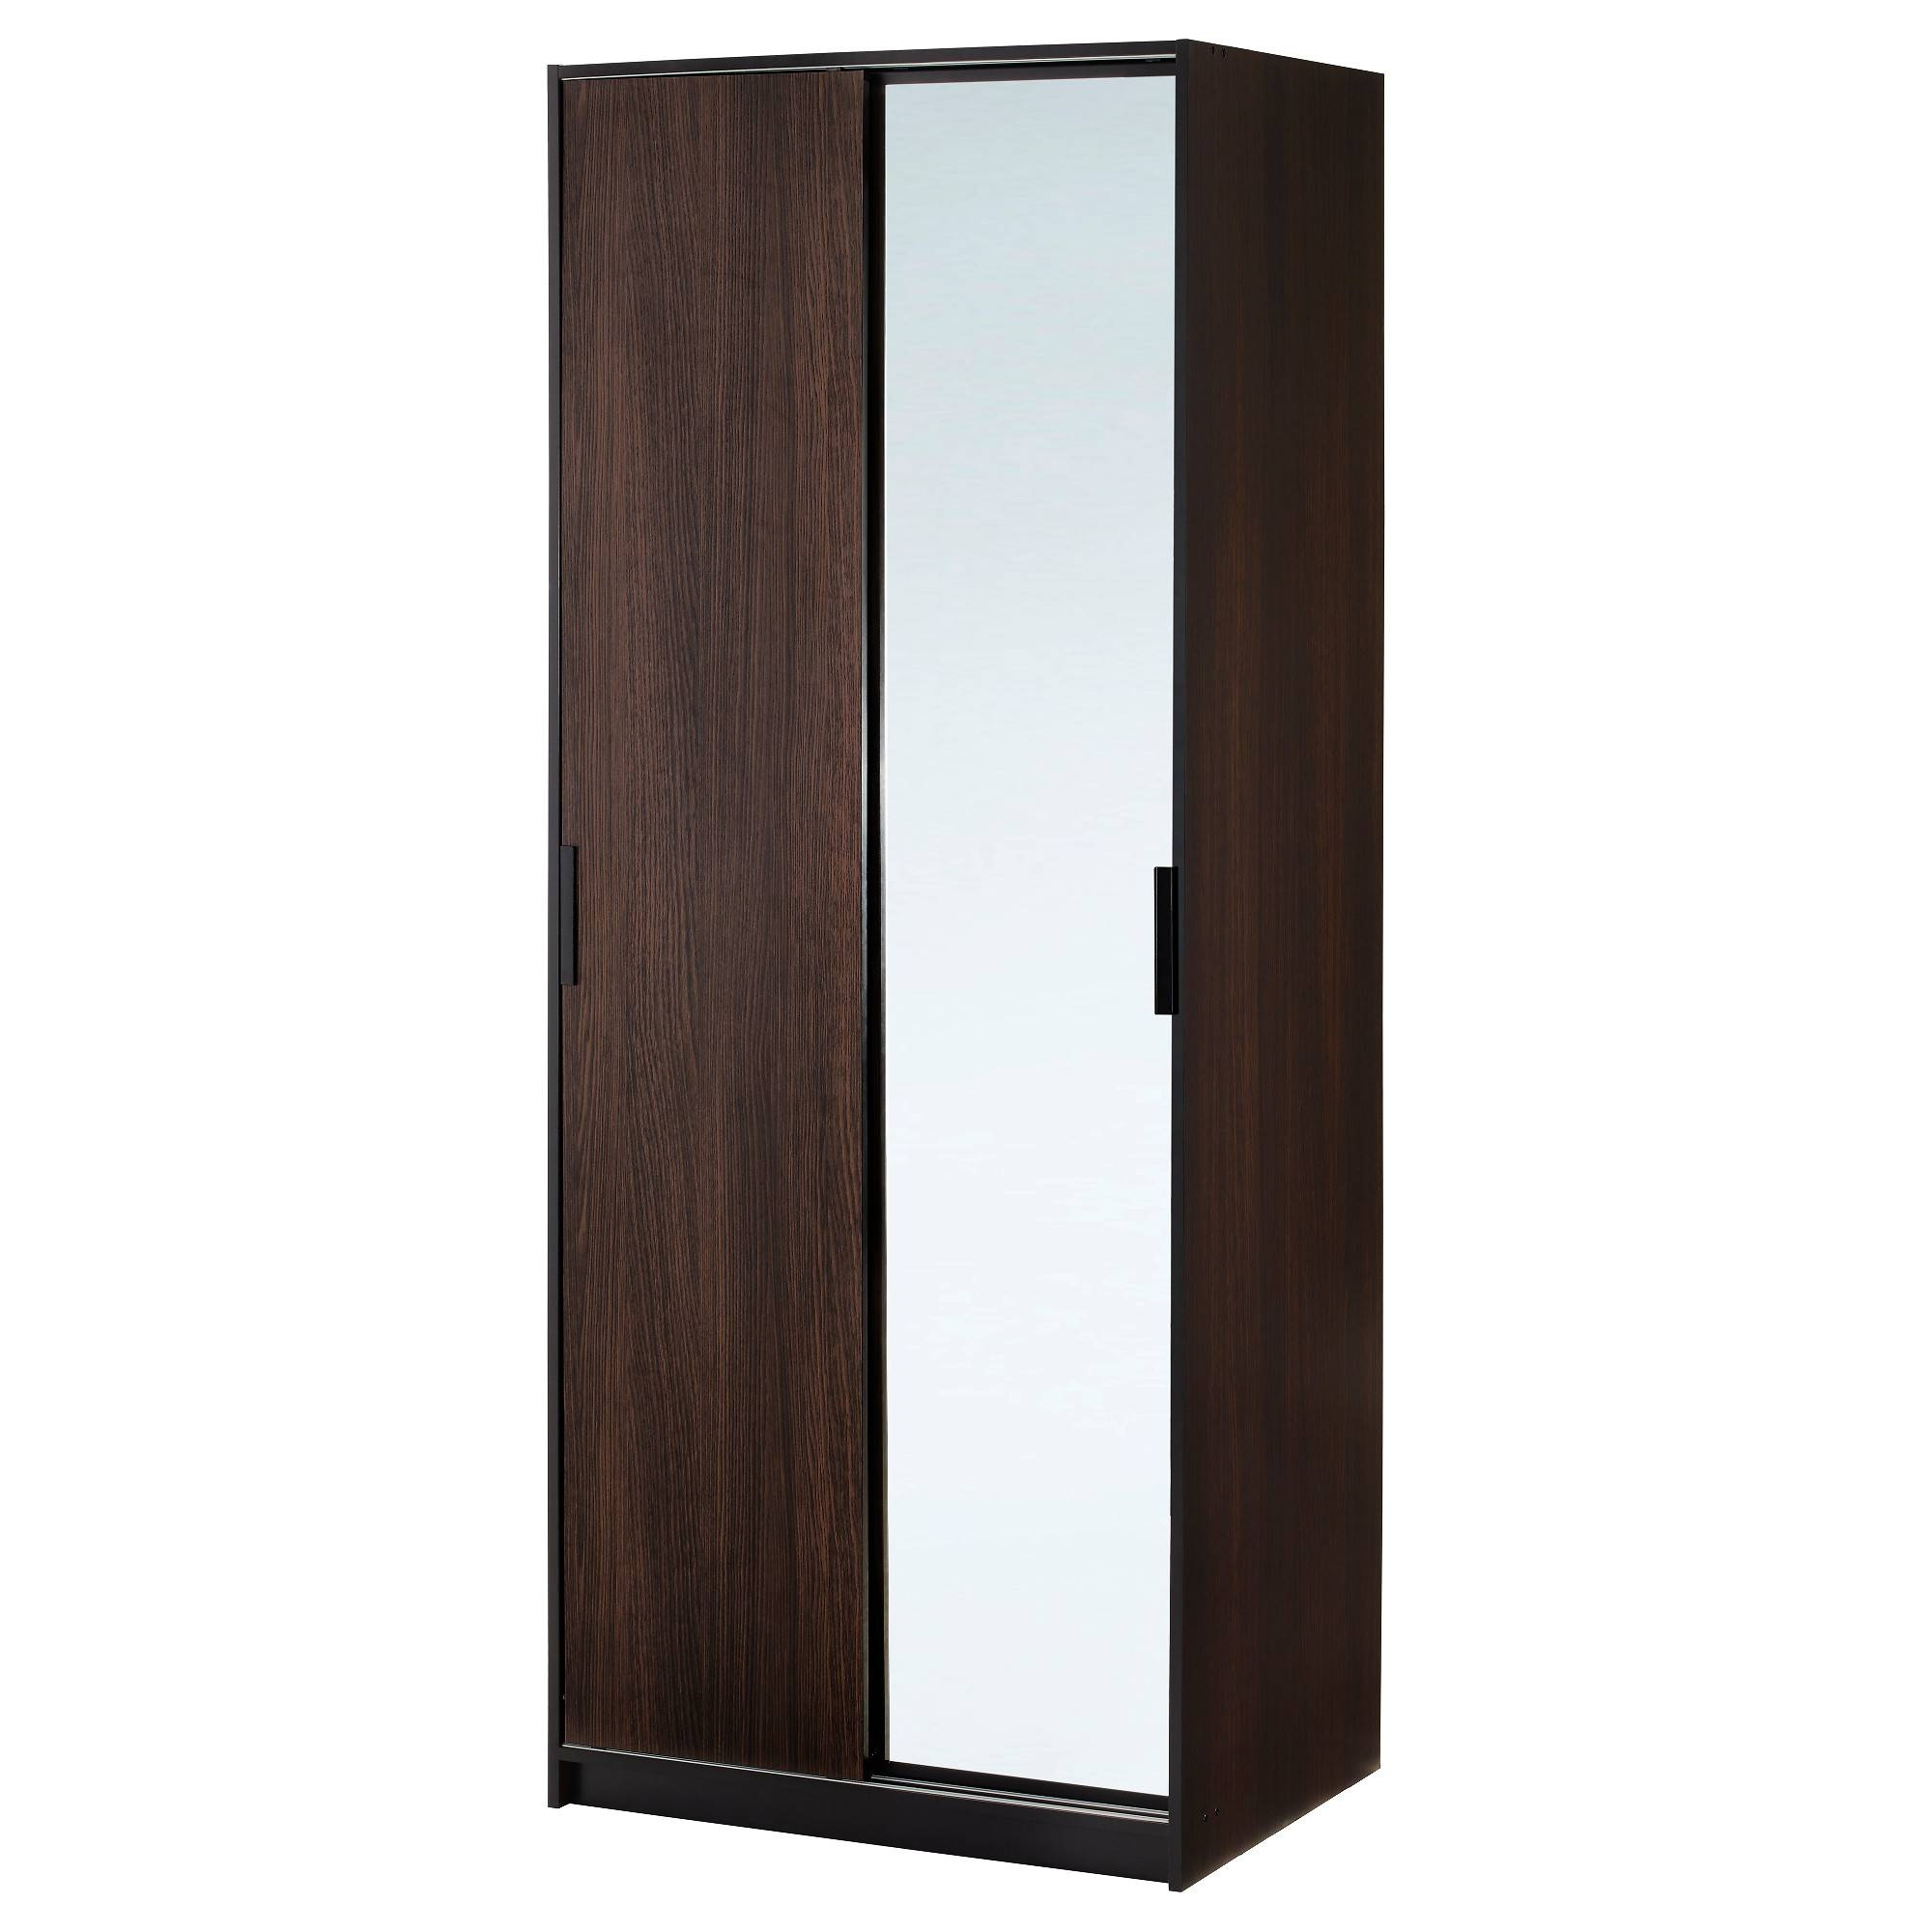 Wardrobes, Armoires & Closets - Ikea with regard to Brown Wardrobes (Image 15 of 15)